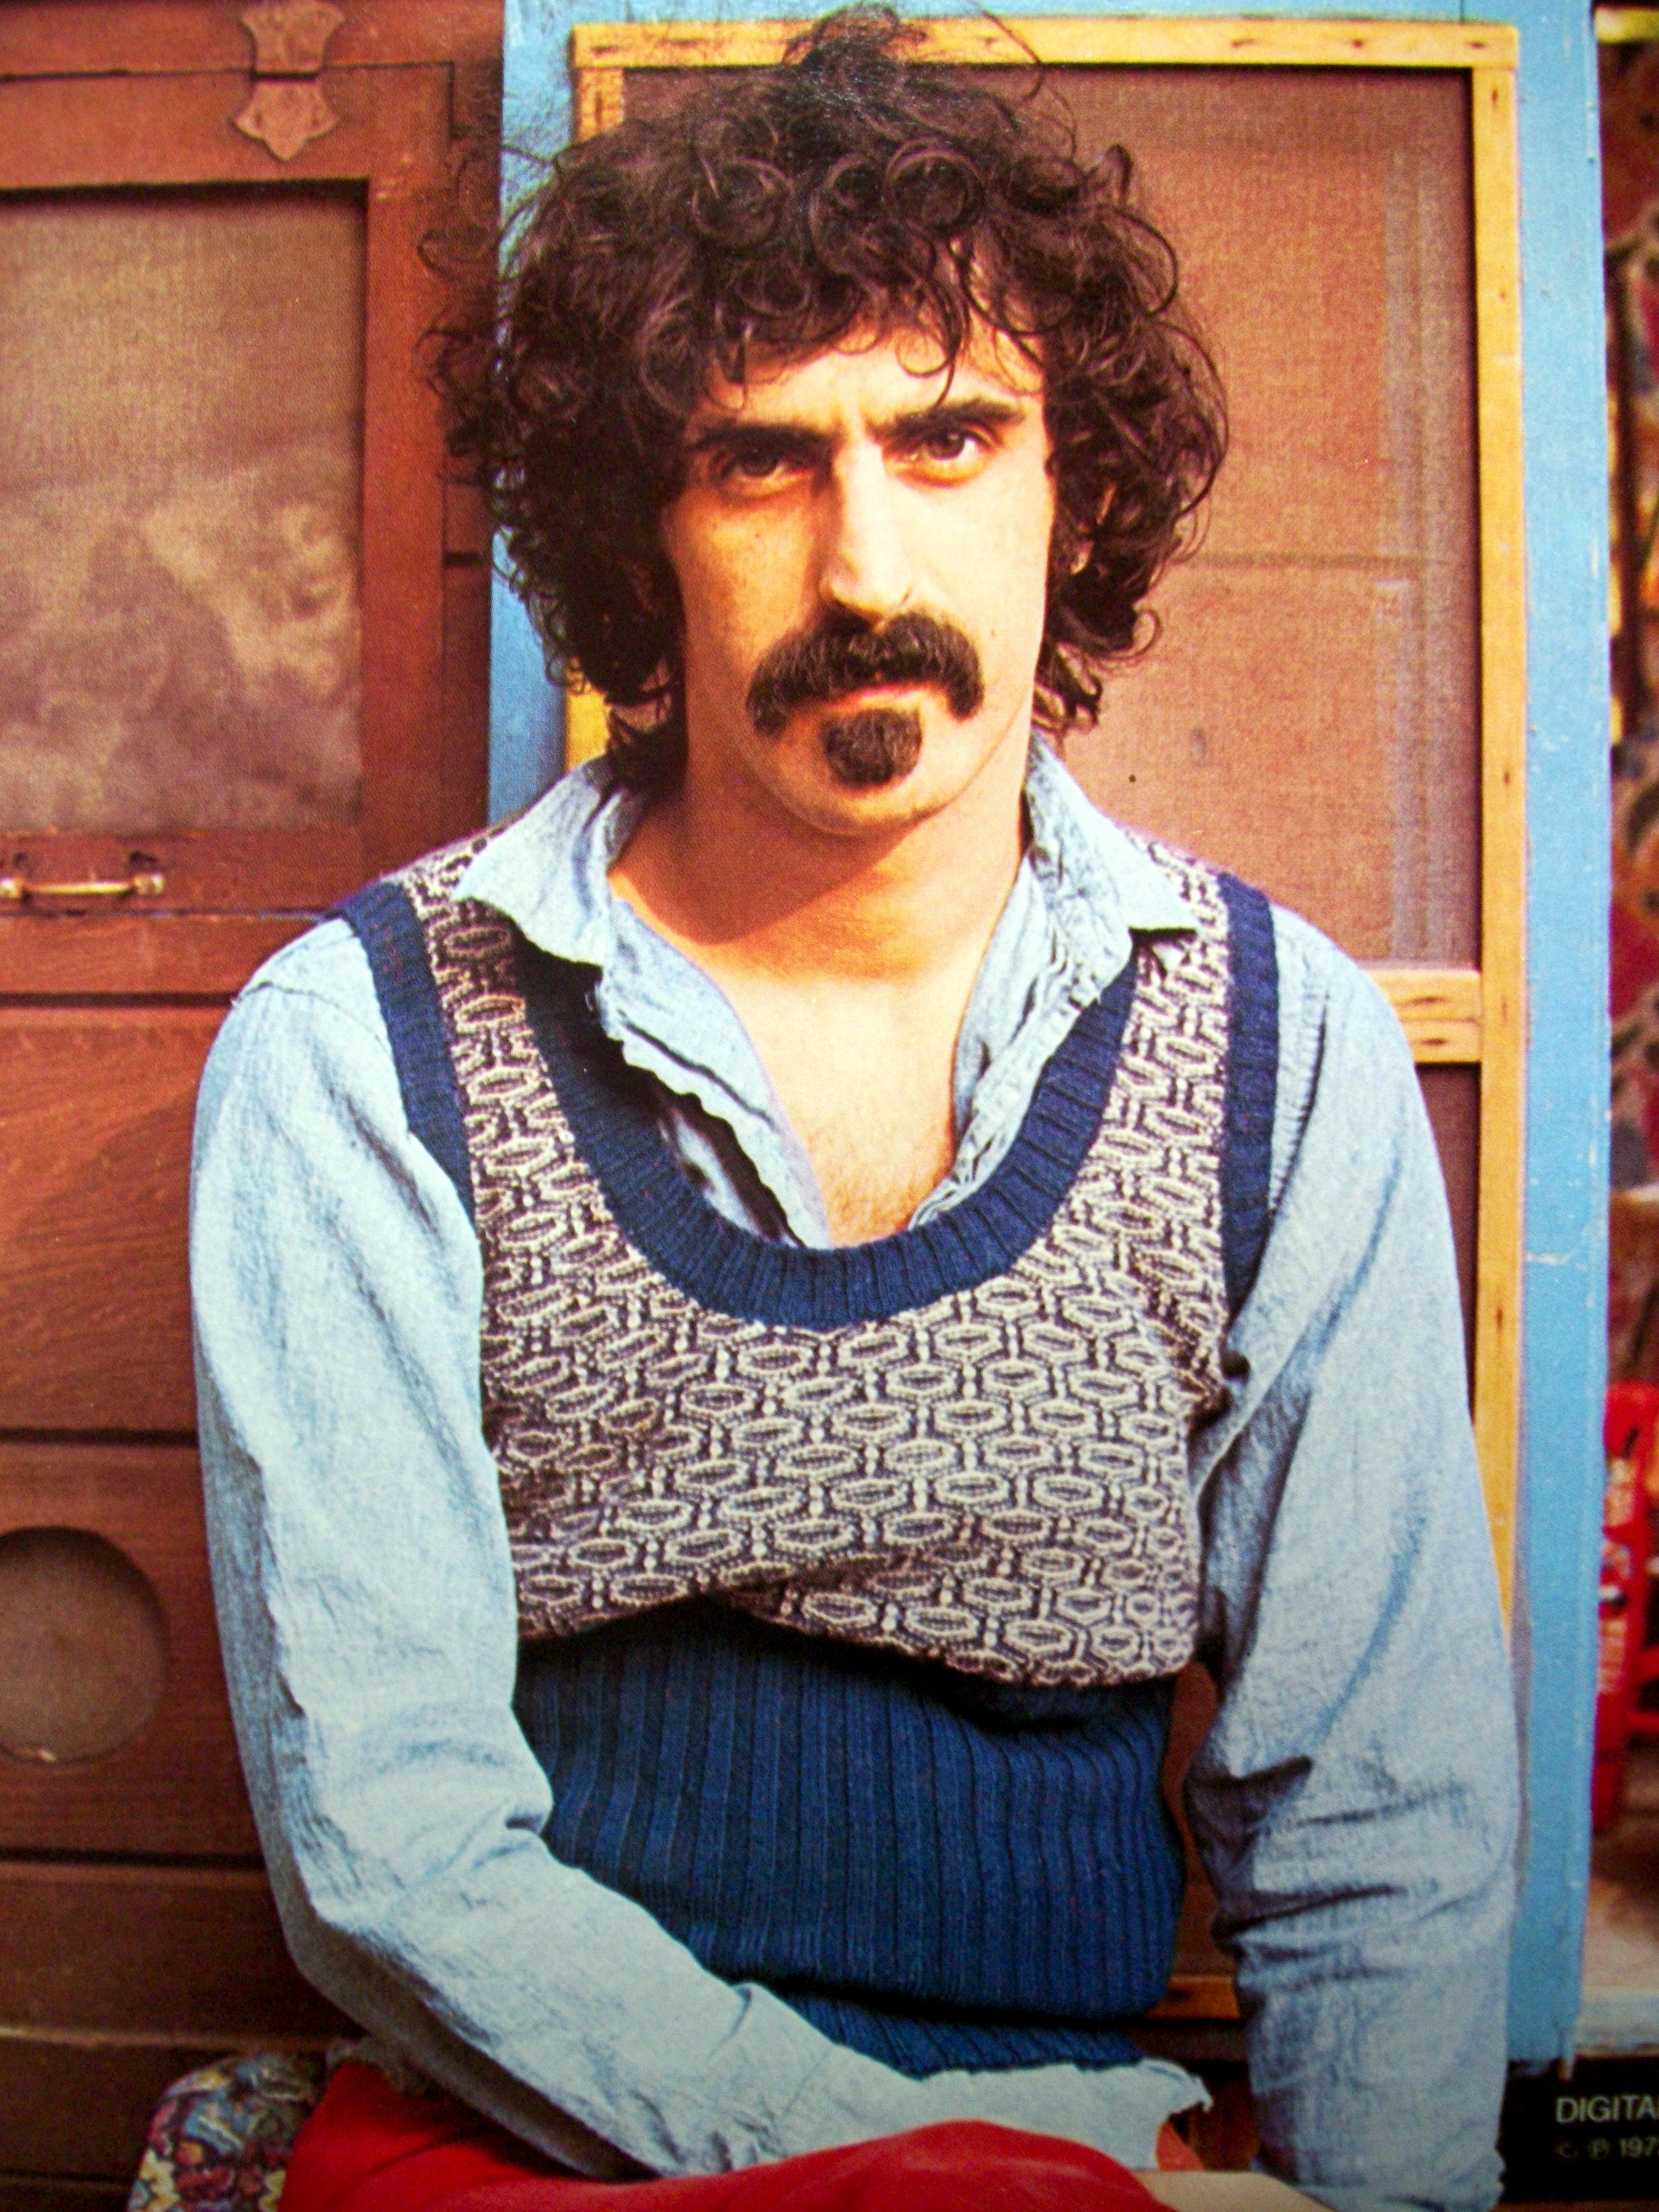 frank zappa Eat that question: frank zappa in his own words review – portrait of a musical revolutionary 4 out of 5 stars.